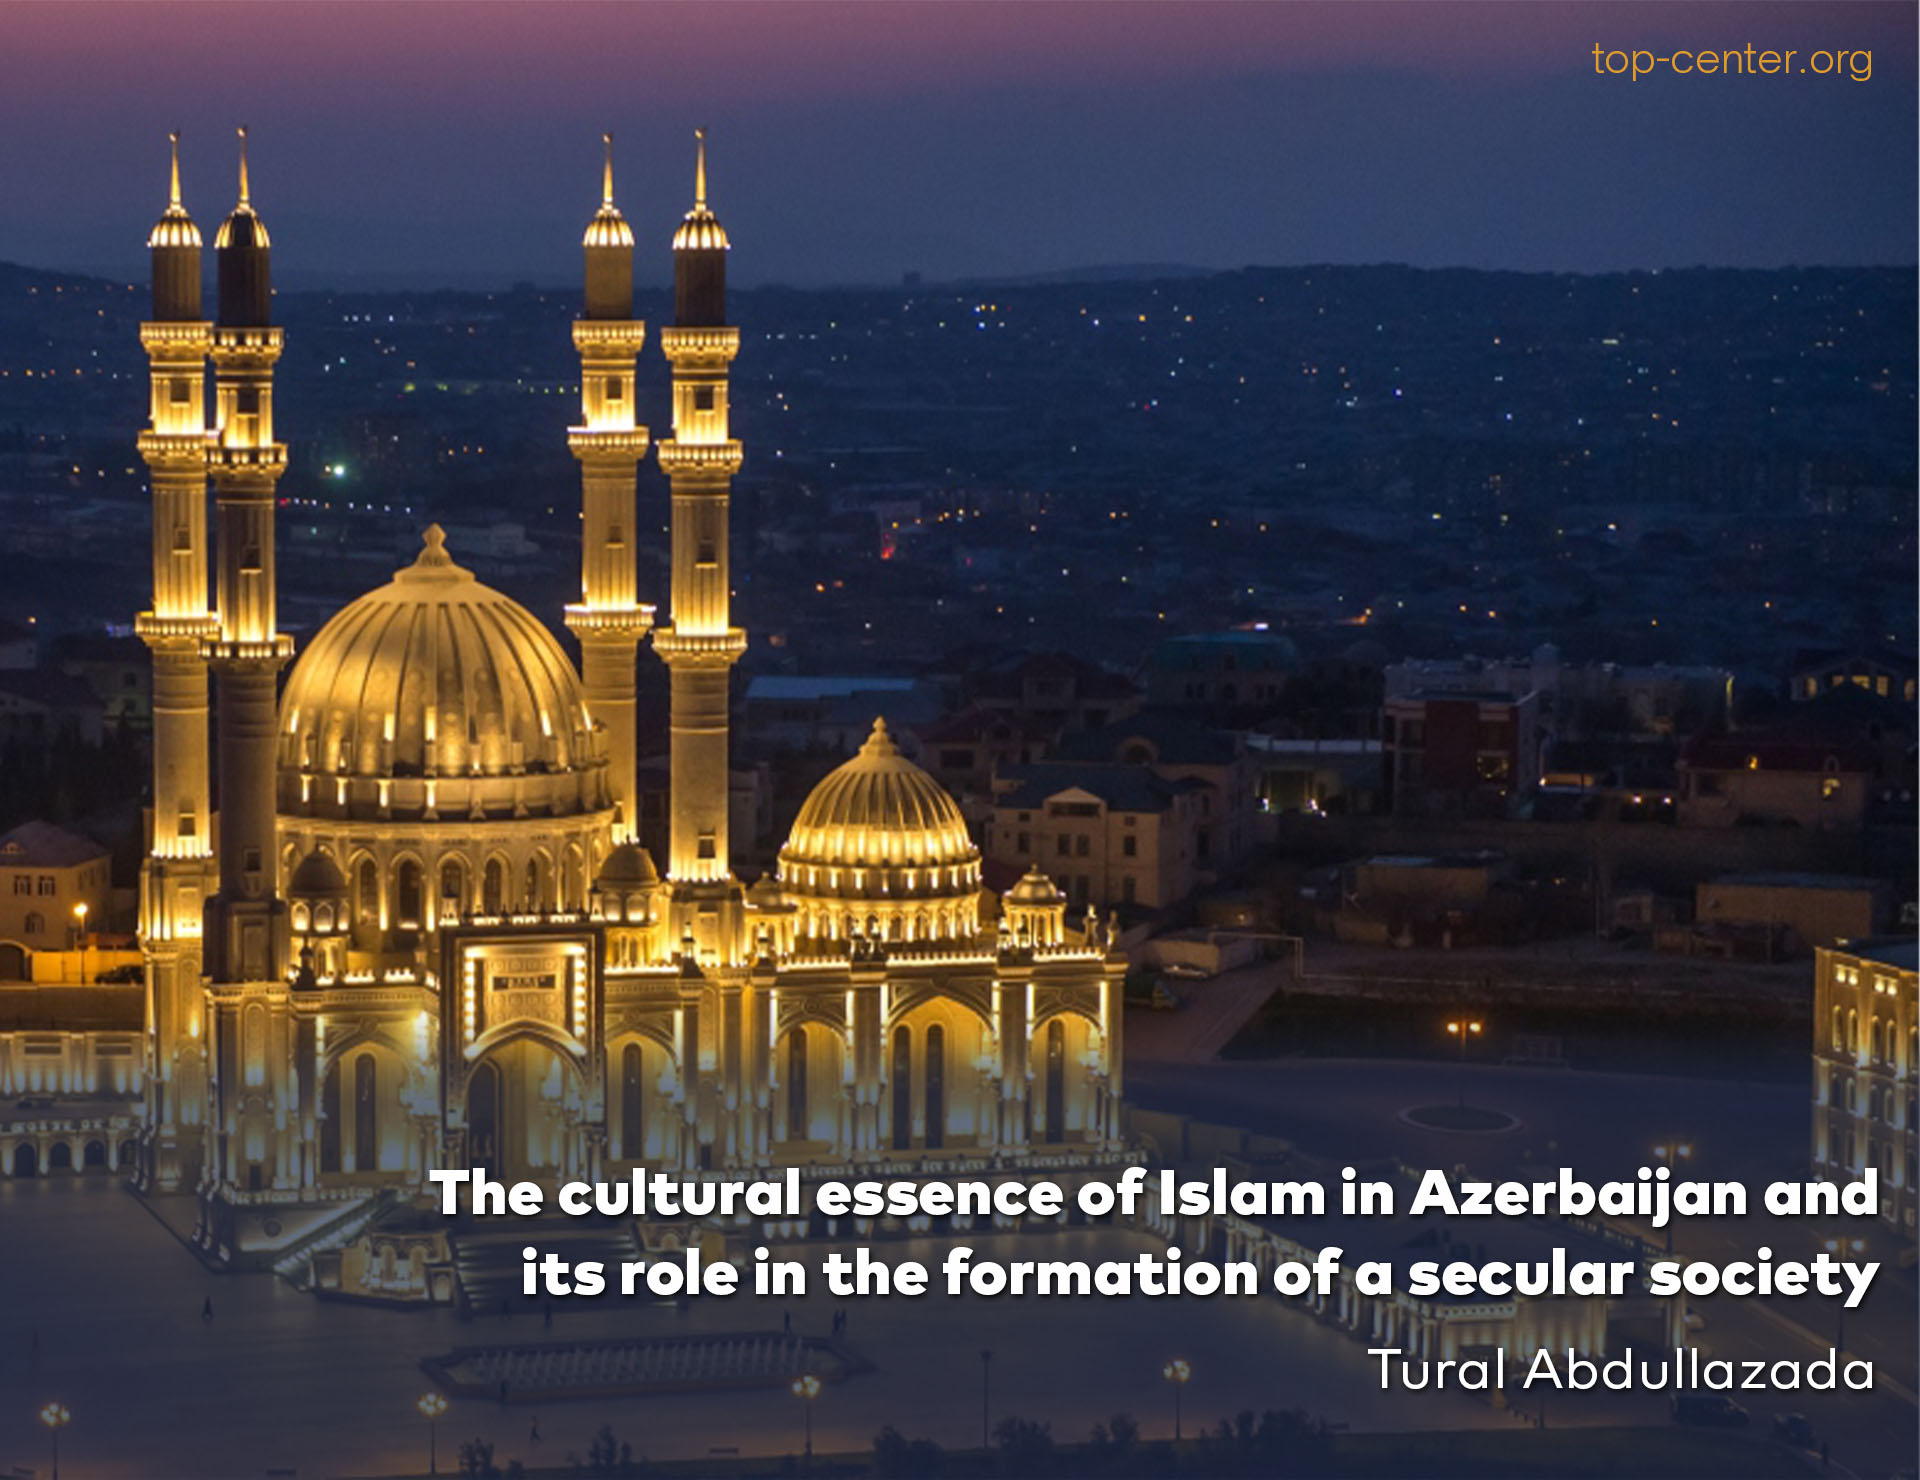 The cultural essence of Islam in Azerbaijan and its role in the formation of a secular society